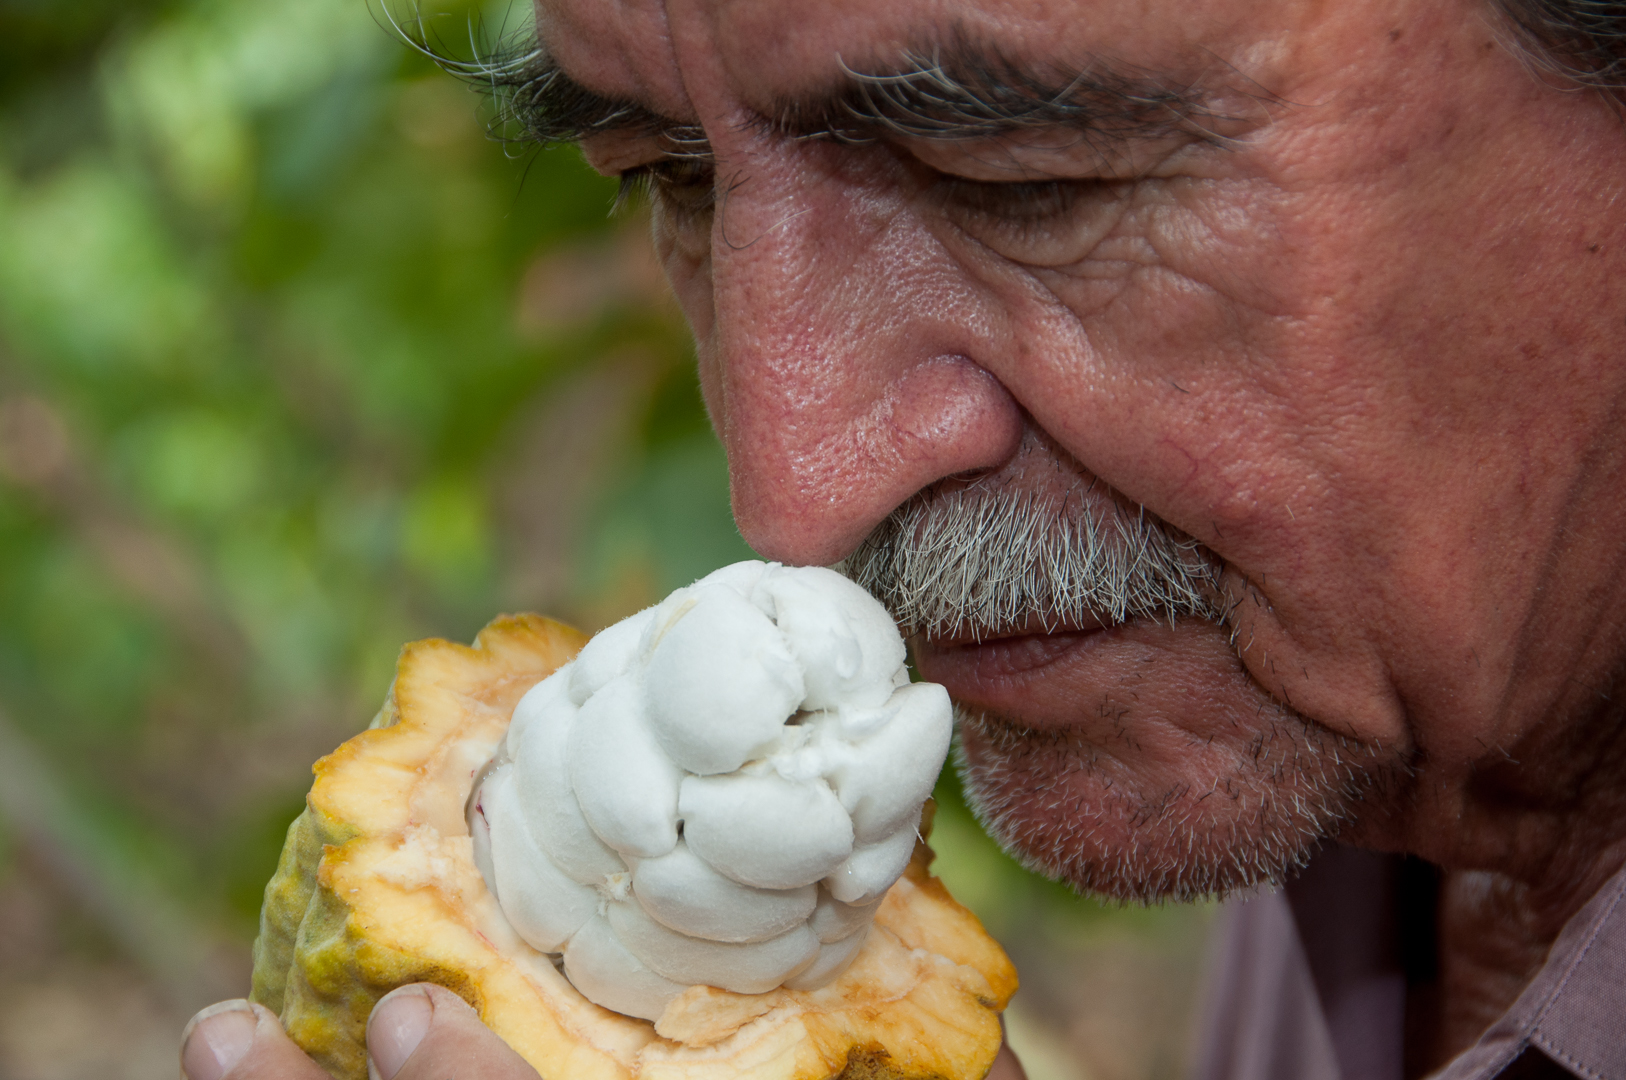 The president of the local cocoa farmers' group outside of Guayaquil, Ecuador, smelling the fresh fruit from a cacao pod